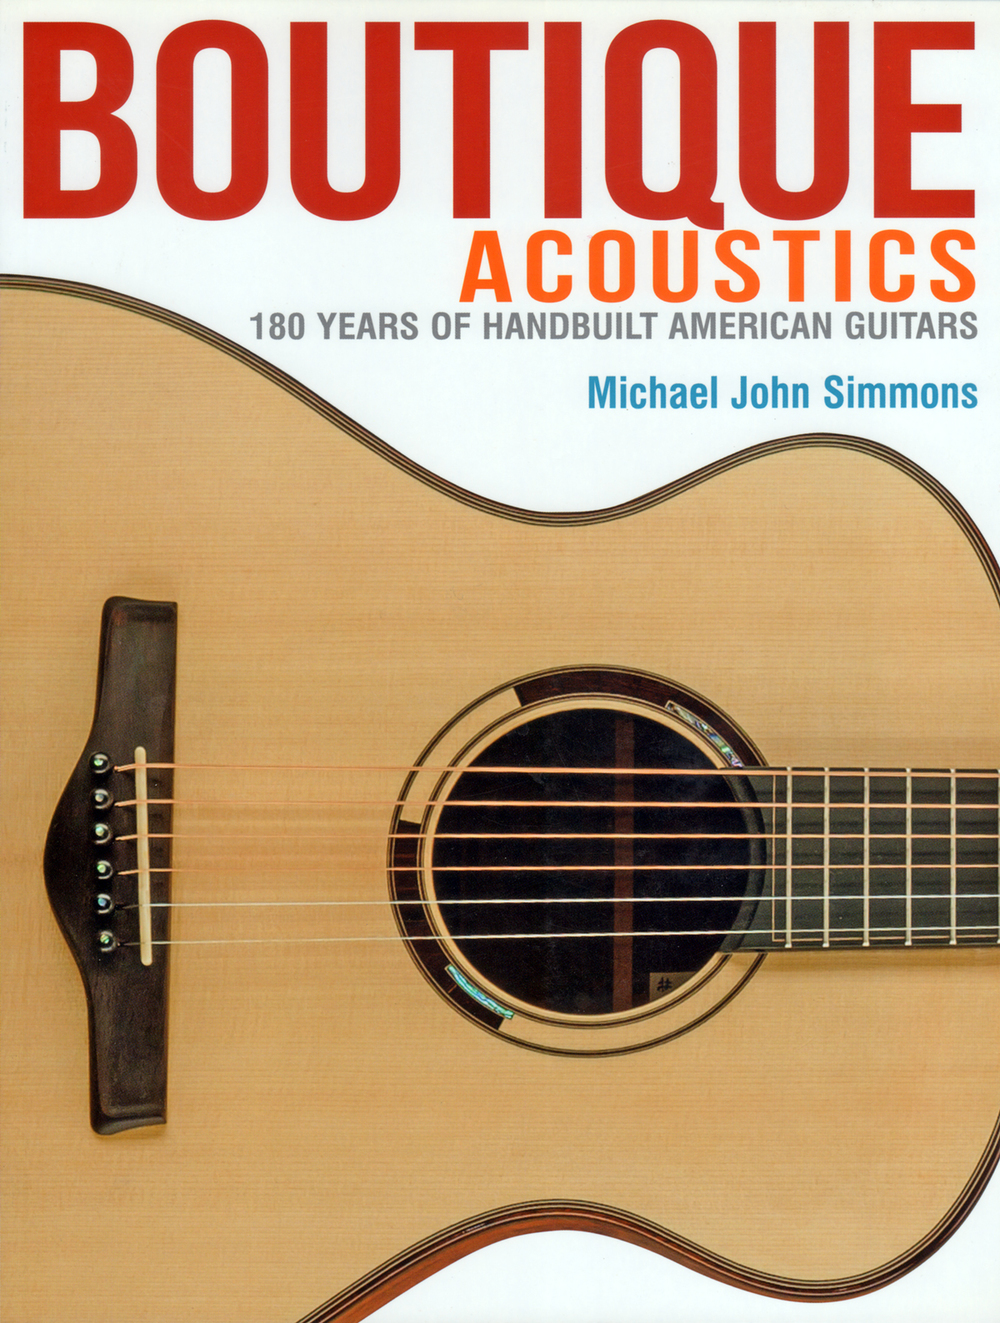 Boutique Acoustics by Michael John Simmons